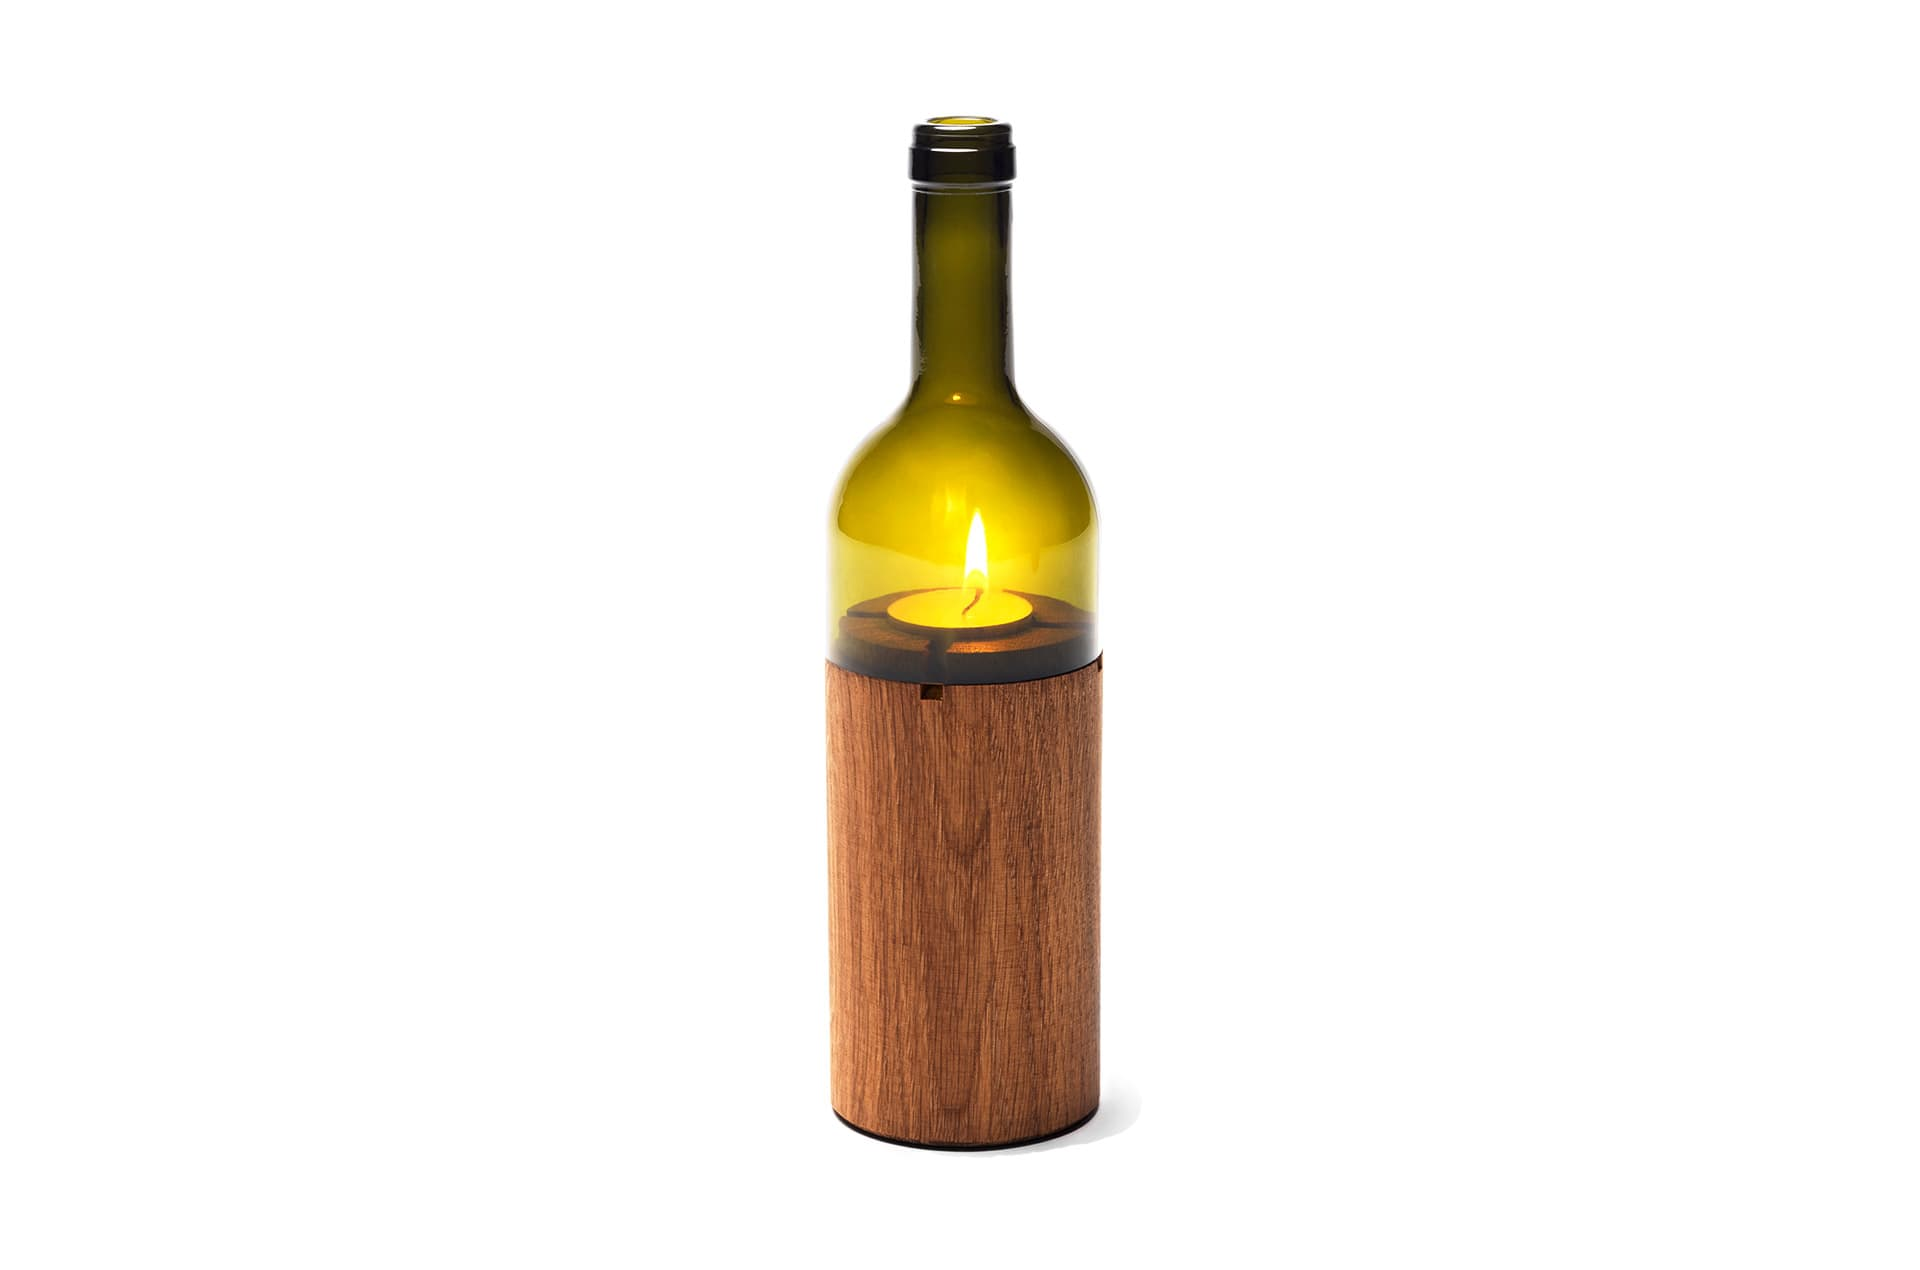 Photophore bouteille vin Weinlicht by SideBySide-1-PARIDEO design durable